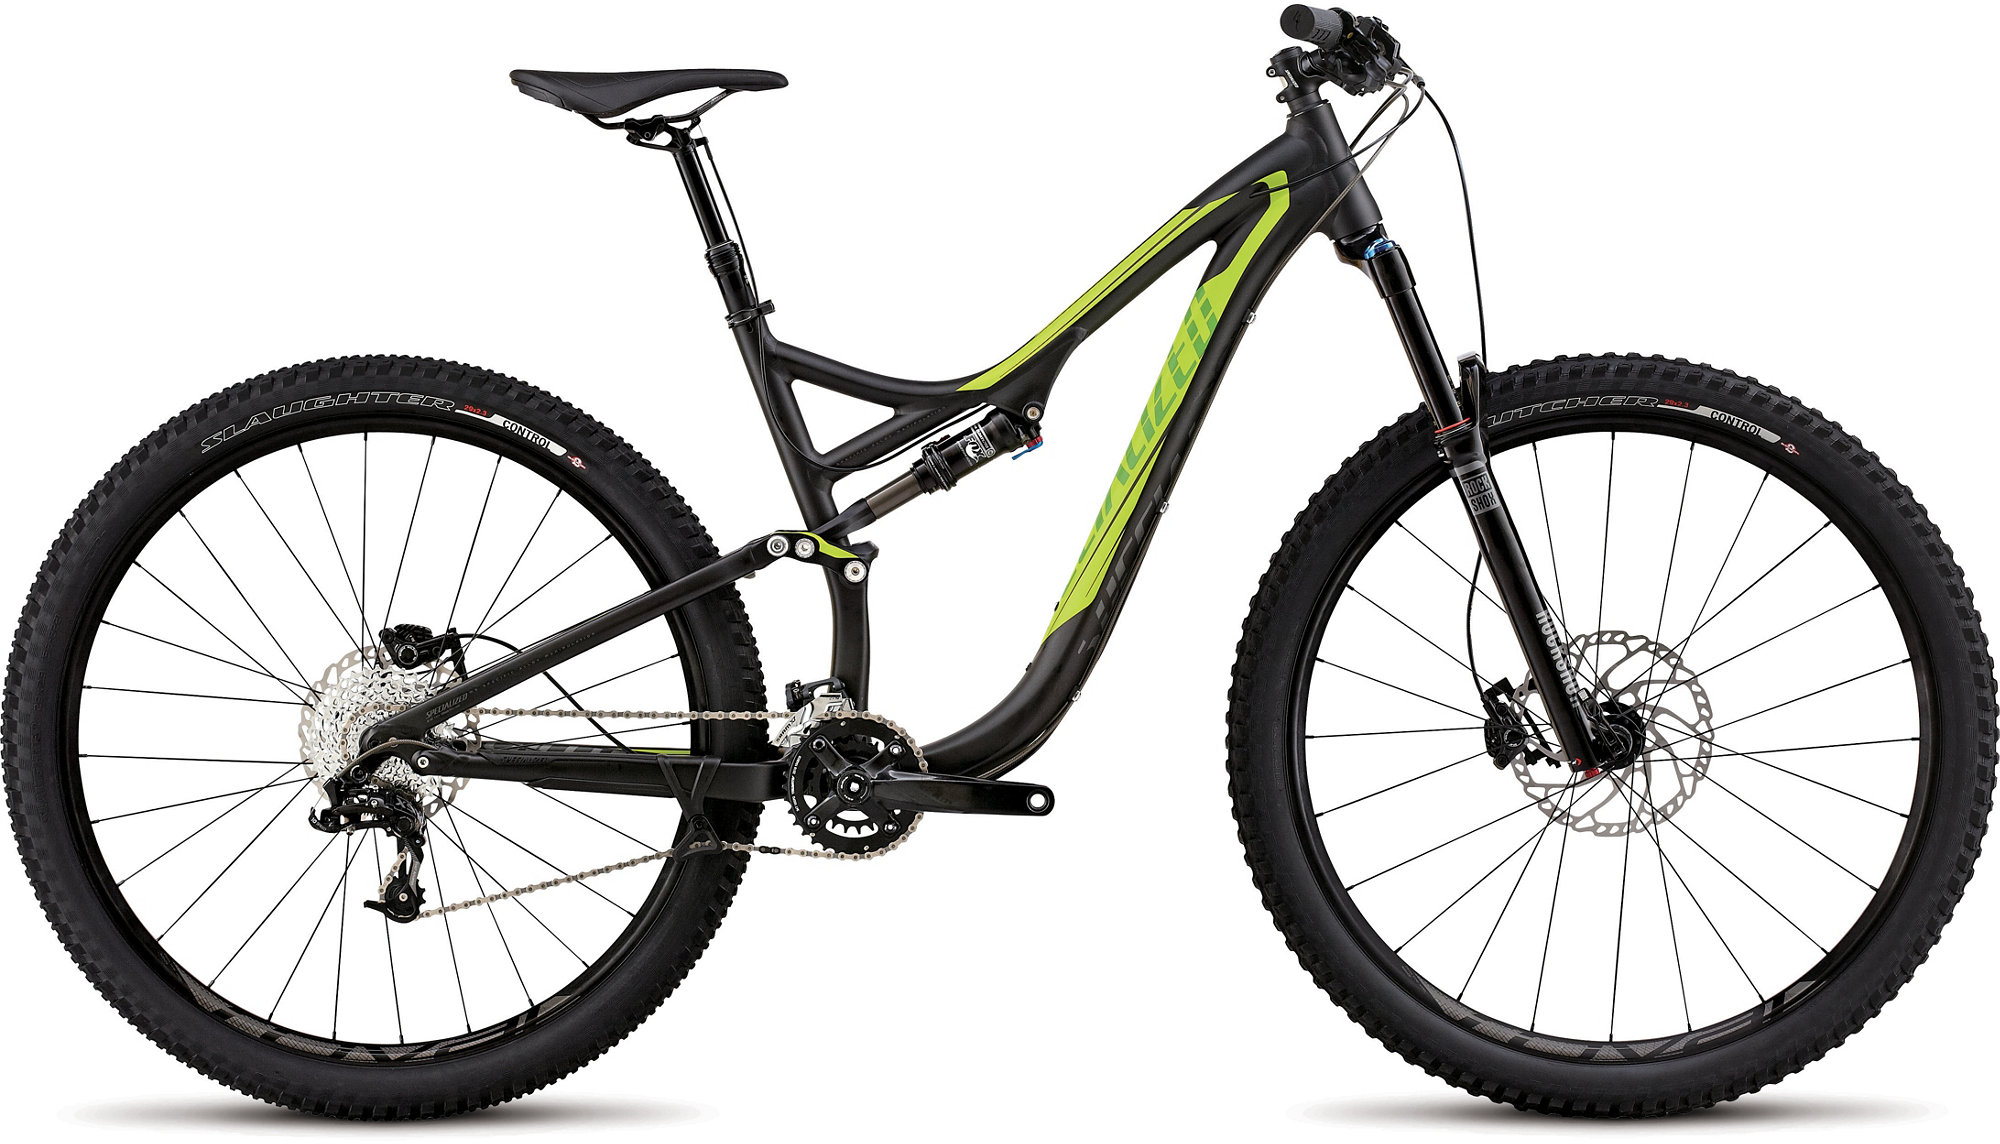 31b4fc31743 2015 Specialized Stumpjumper FSR Comp EVO 29 - Specialized Concept Store